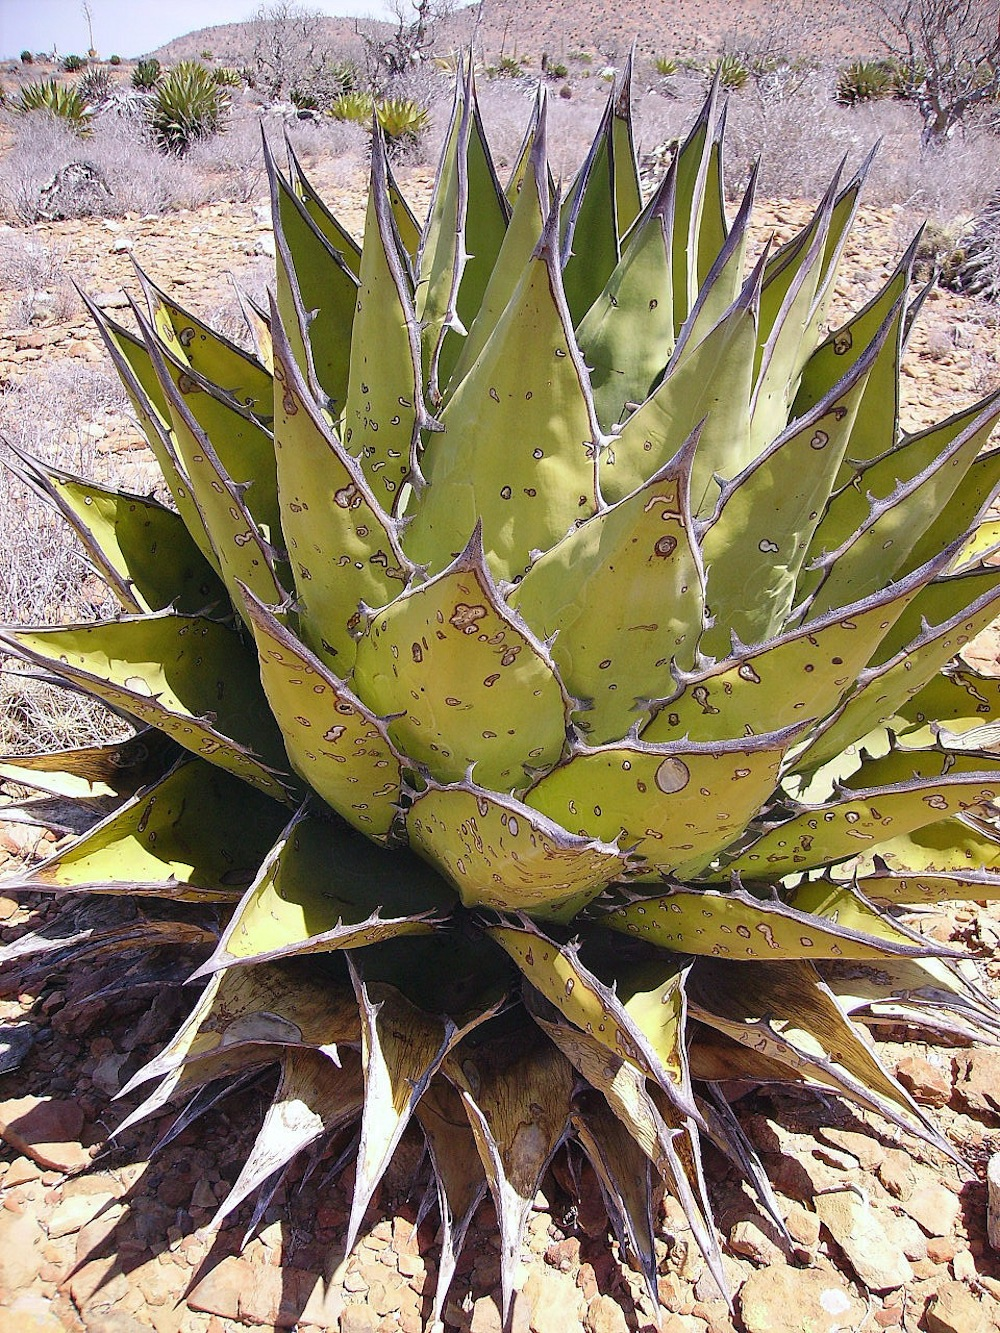 Agave in Baja California